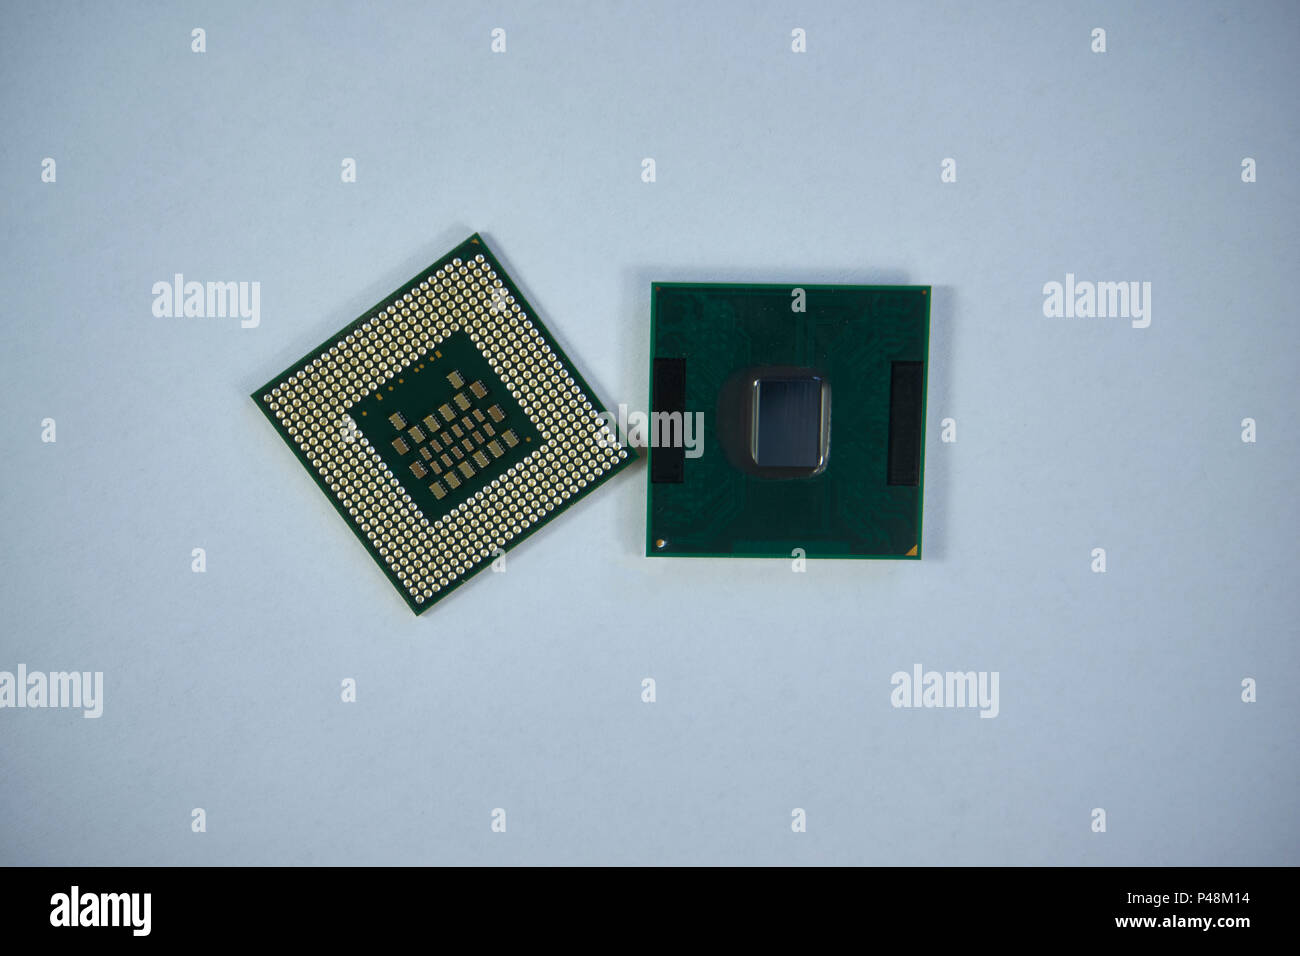 Central processing unit CPU processors microchip - Stock Image